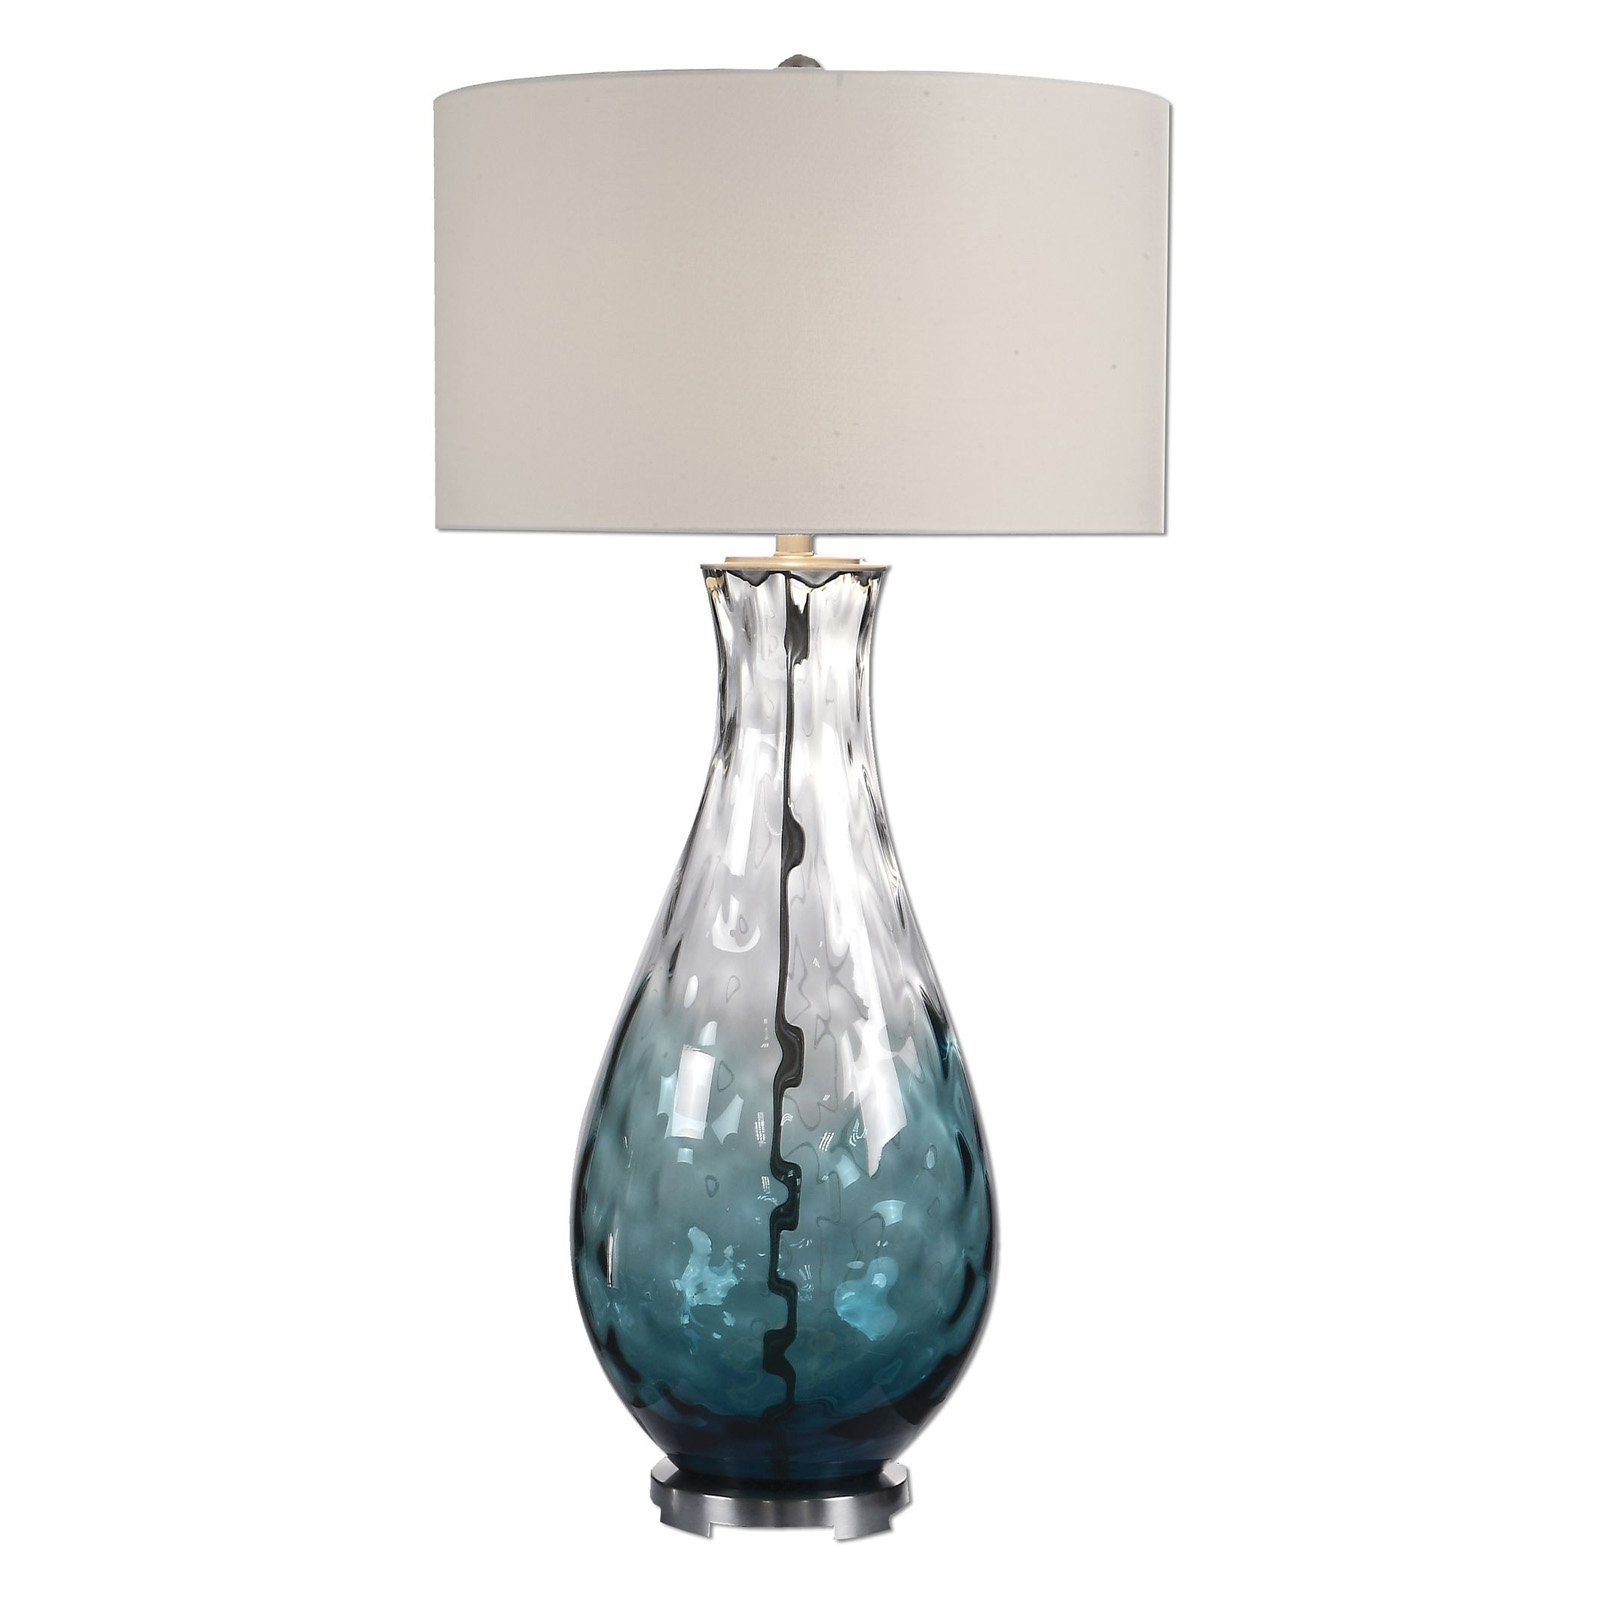 Newest Living Room Table Lamps At Target Pertaining To Top 55 Tremendous Pair Of Table Lamps Target Clear Glass Lamp Large (View 6 of 15)